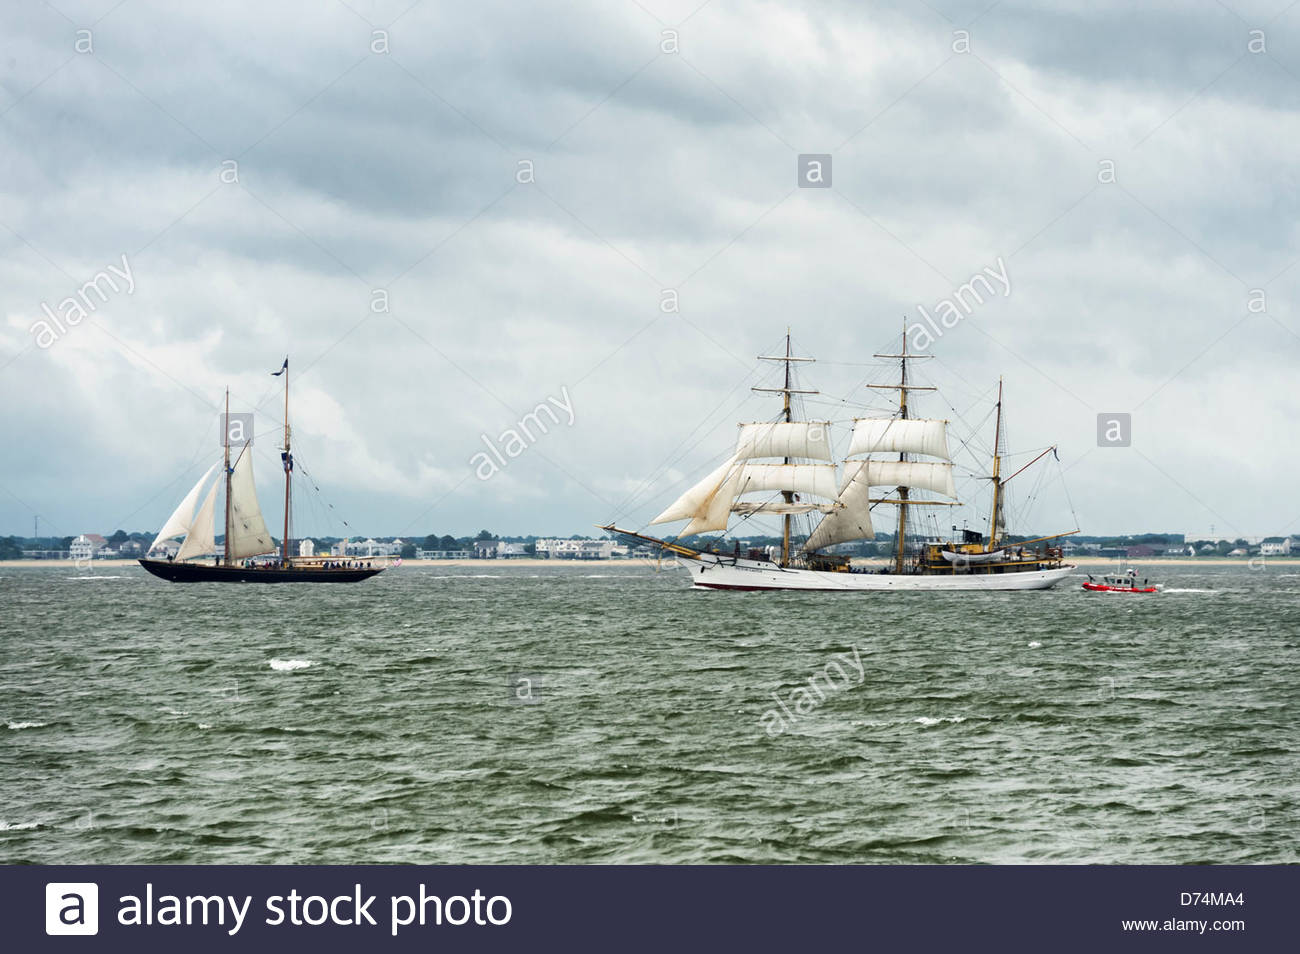 Schooner Virginia United States followed by Picton Castle form Cook Islands leaving Hampton Roads Harbor conclusion - Stock Image